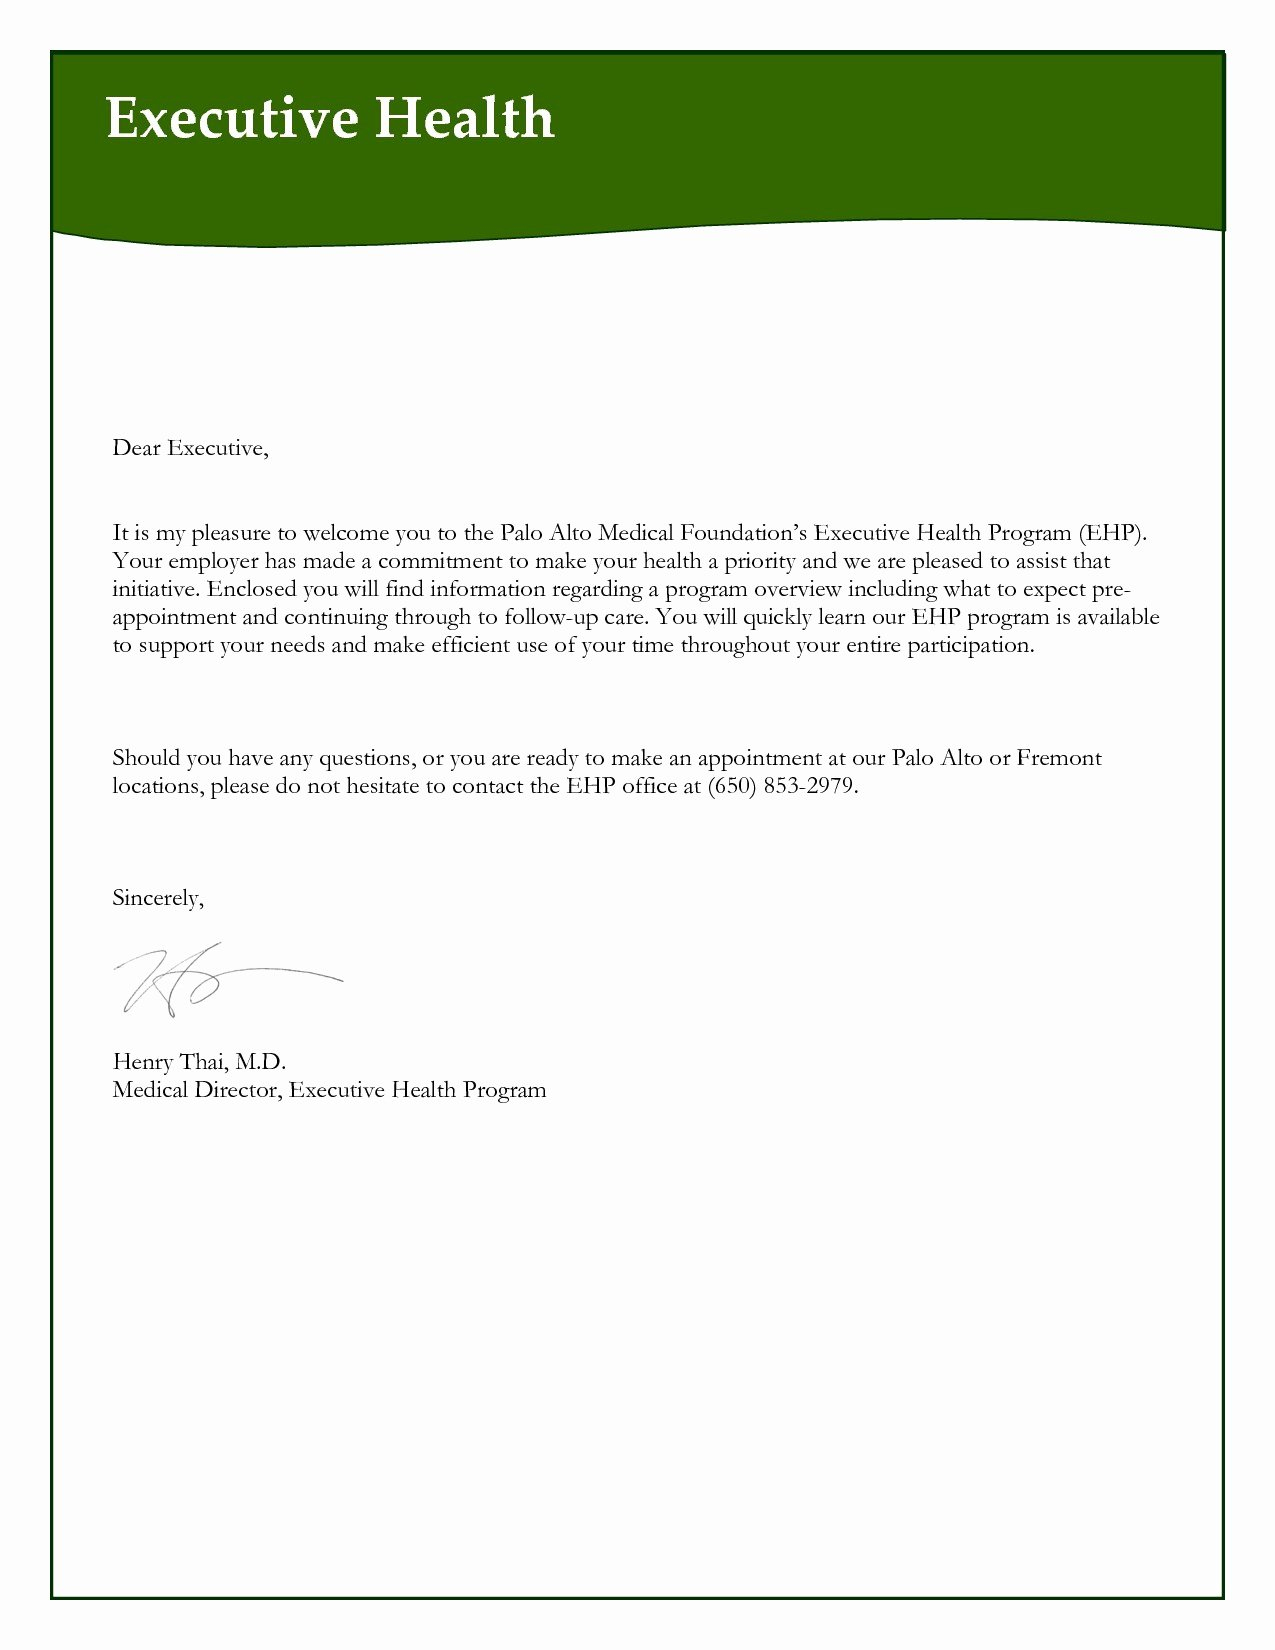 Appointment Reminder Letter Template Medical Examples